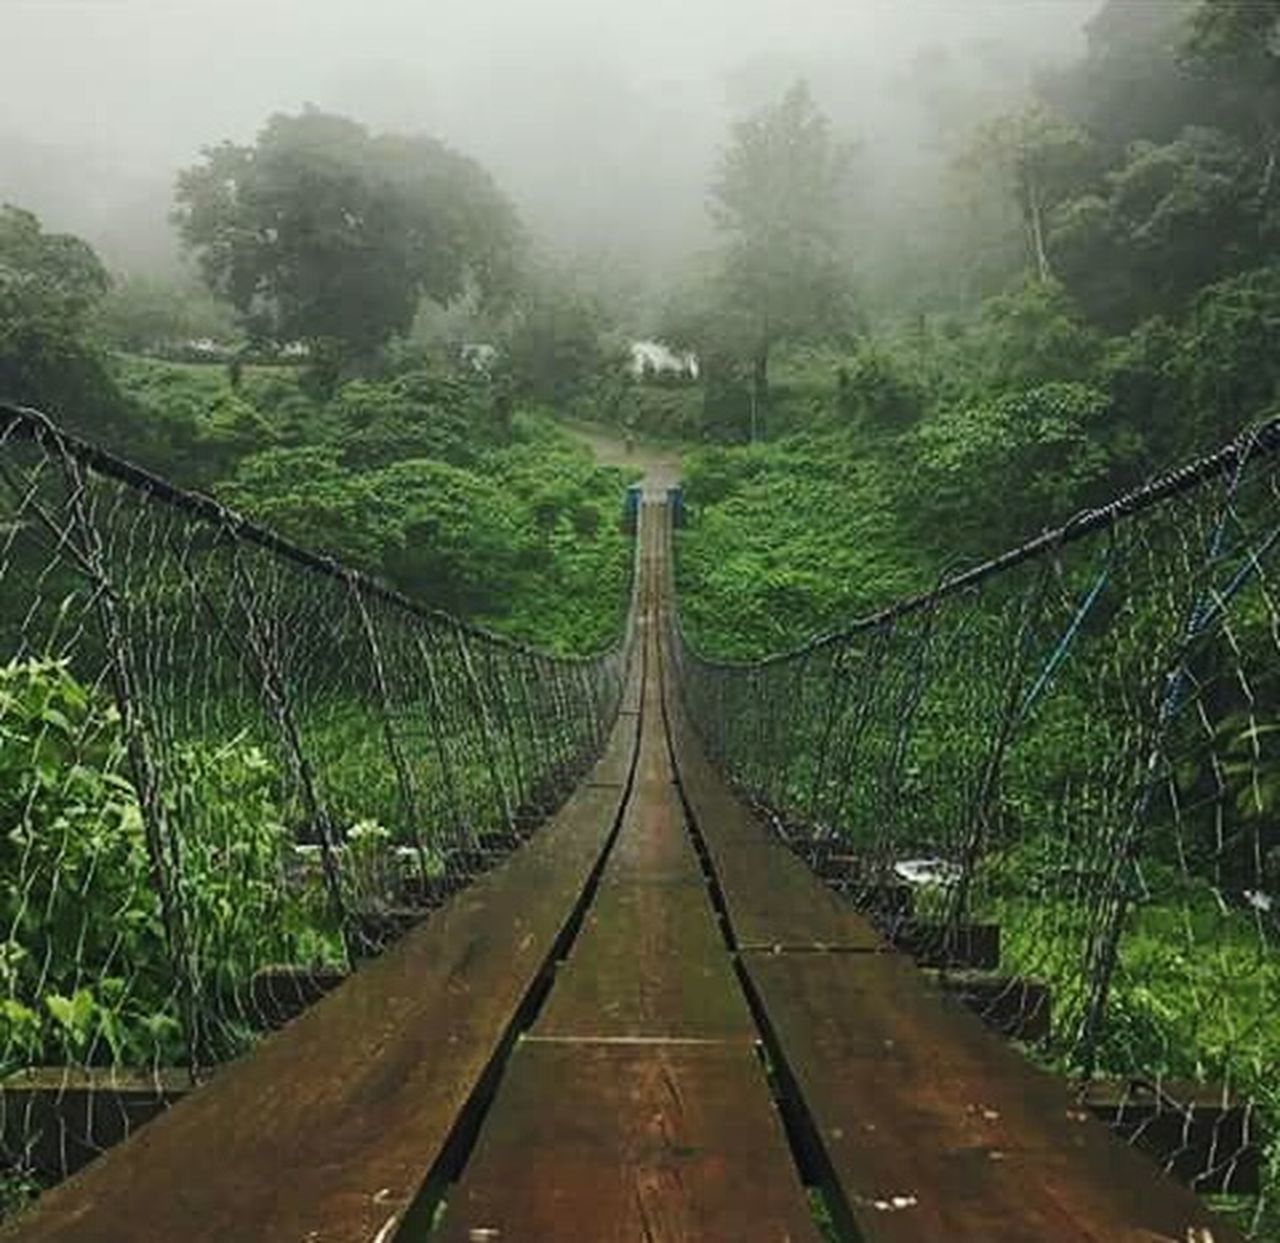 the way forward, tree, bridge - man made structure, nature, wood - material, footbridge, forest, growth, beauty in nature, outdoors, connection, tranquil scene, fog, tranquility, day, scenics, no people, water, sky